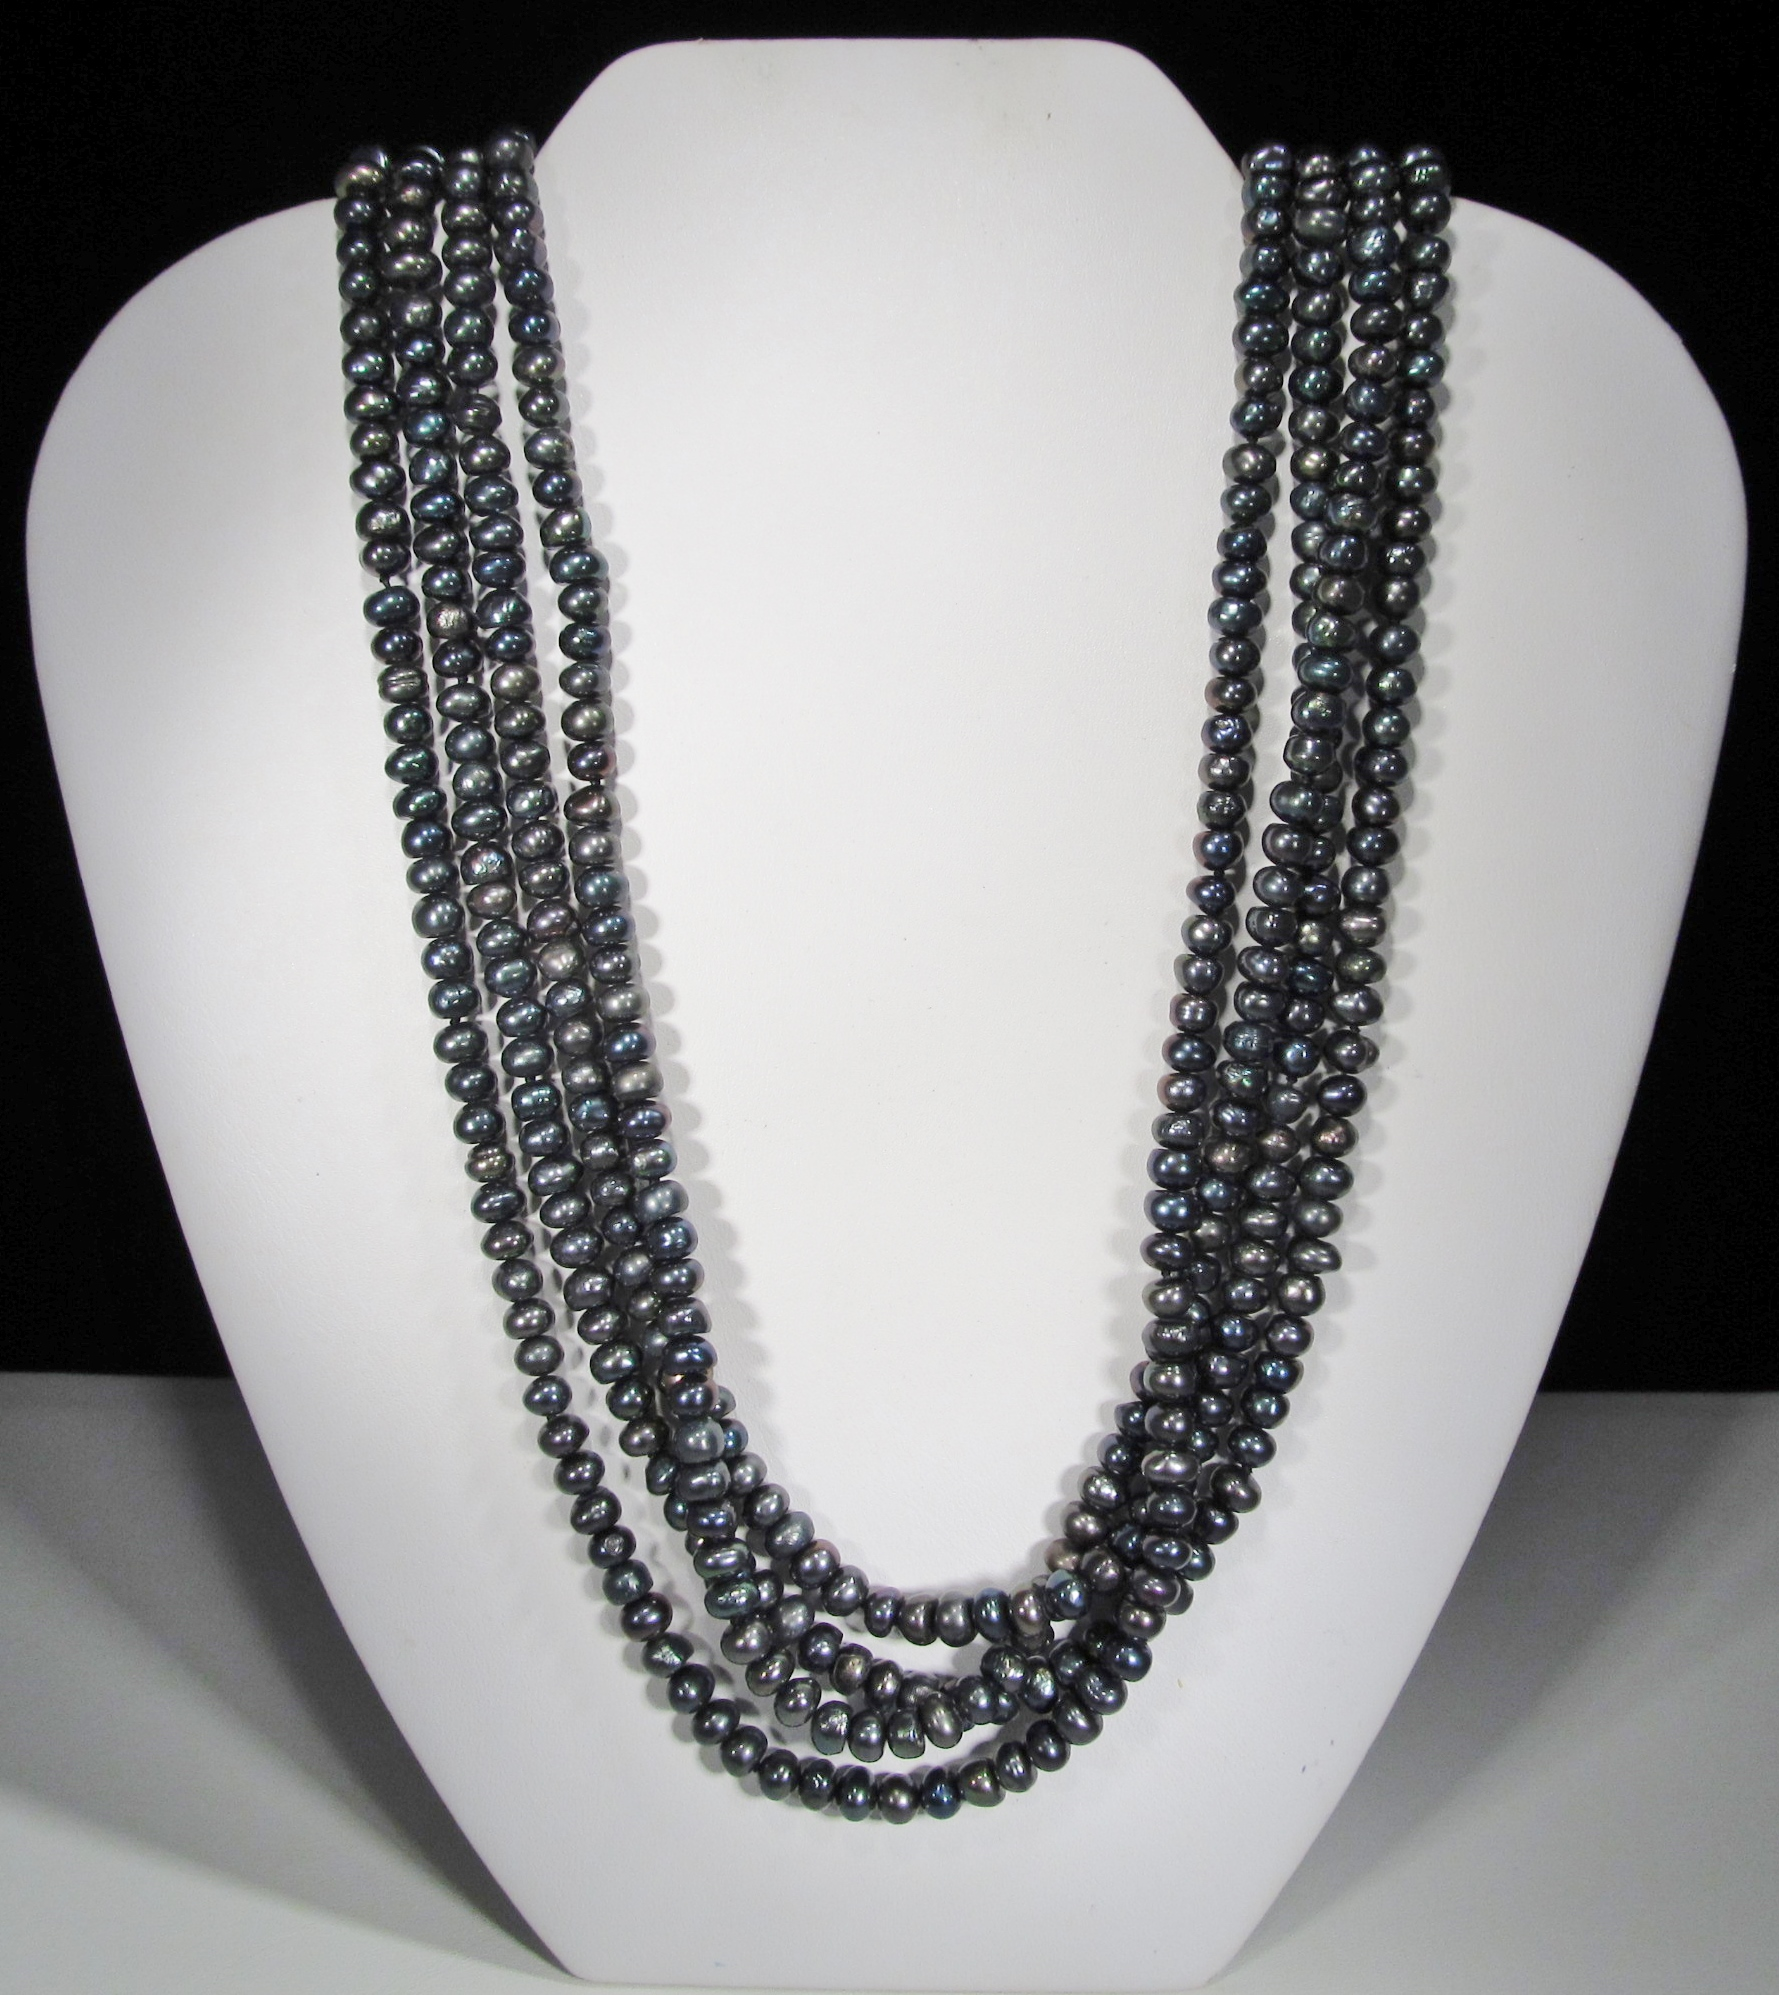 55mm Real Black Pearl Rope 99 Long WC 031